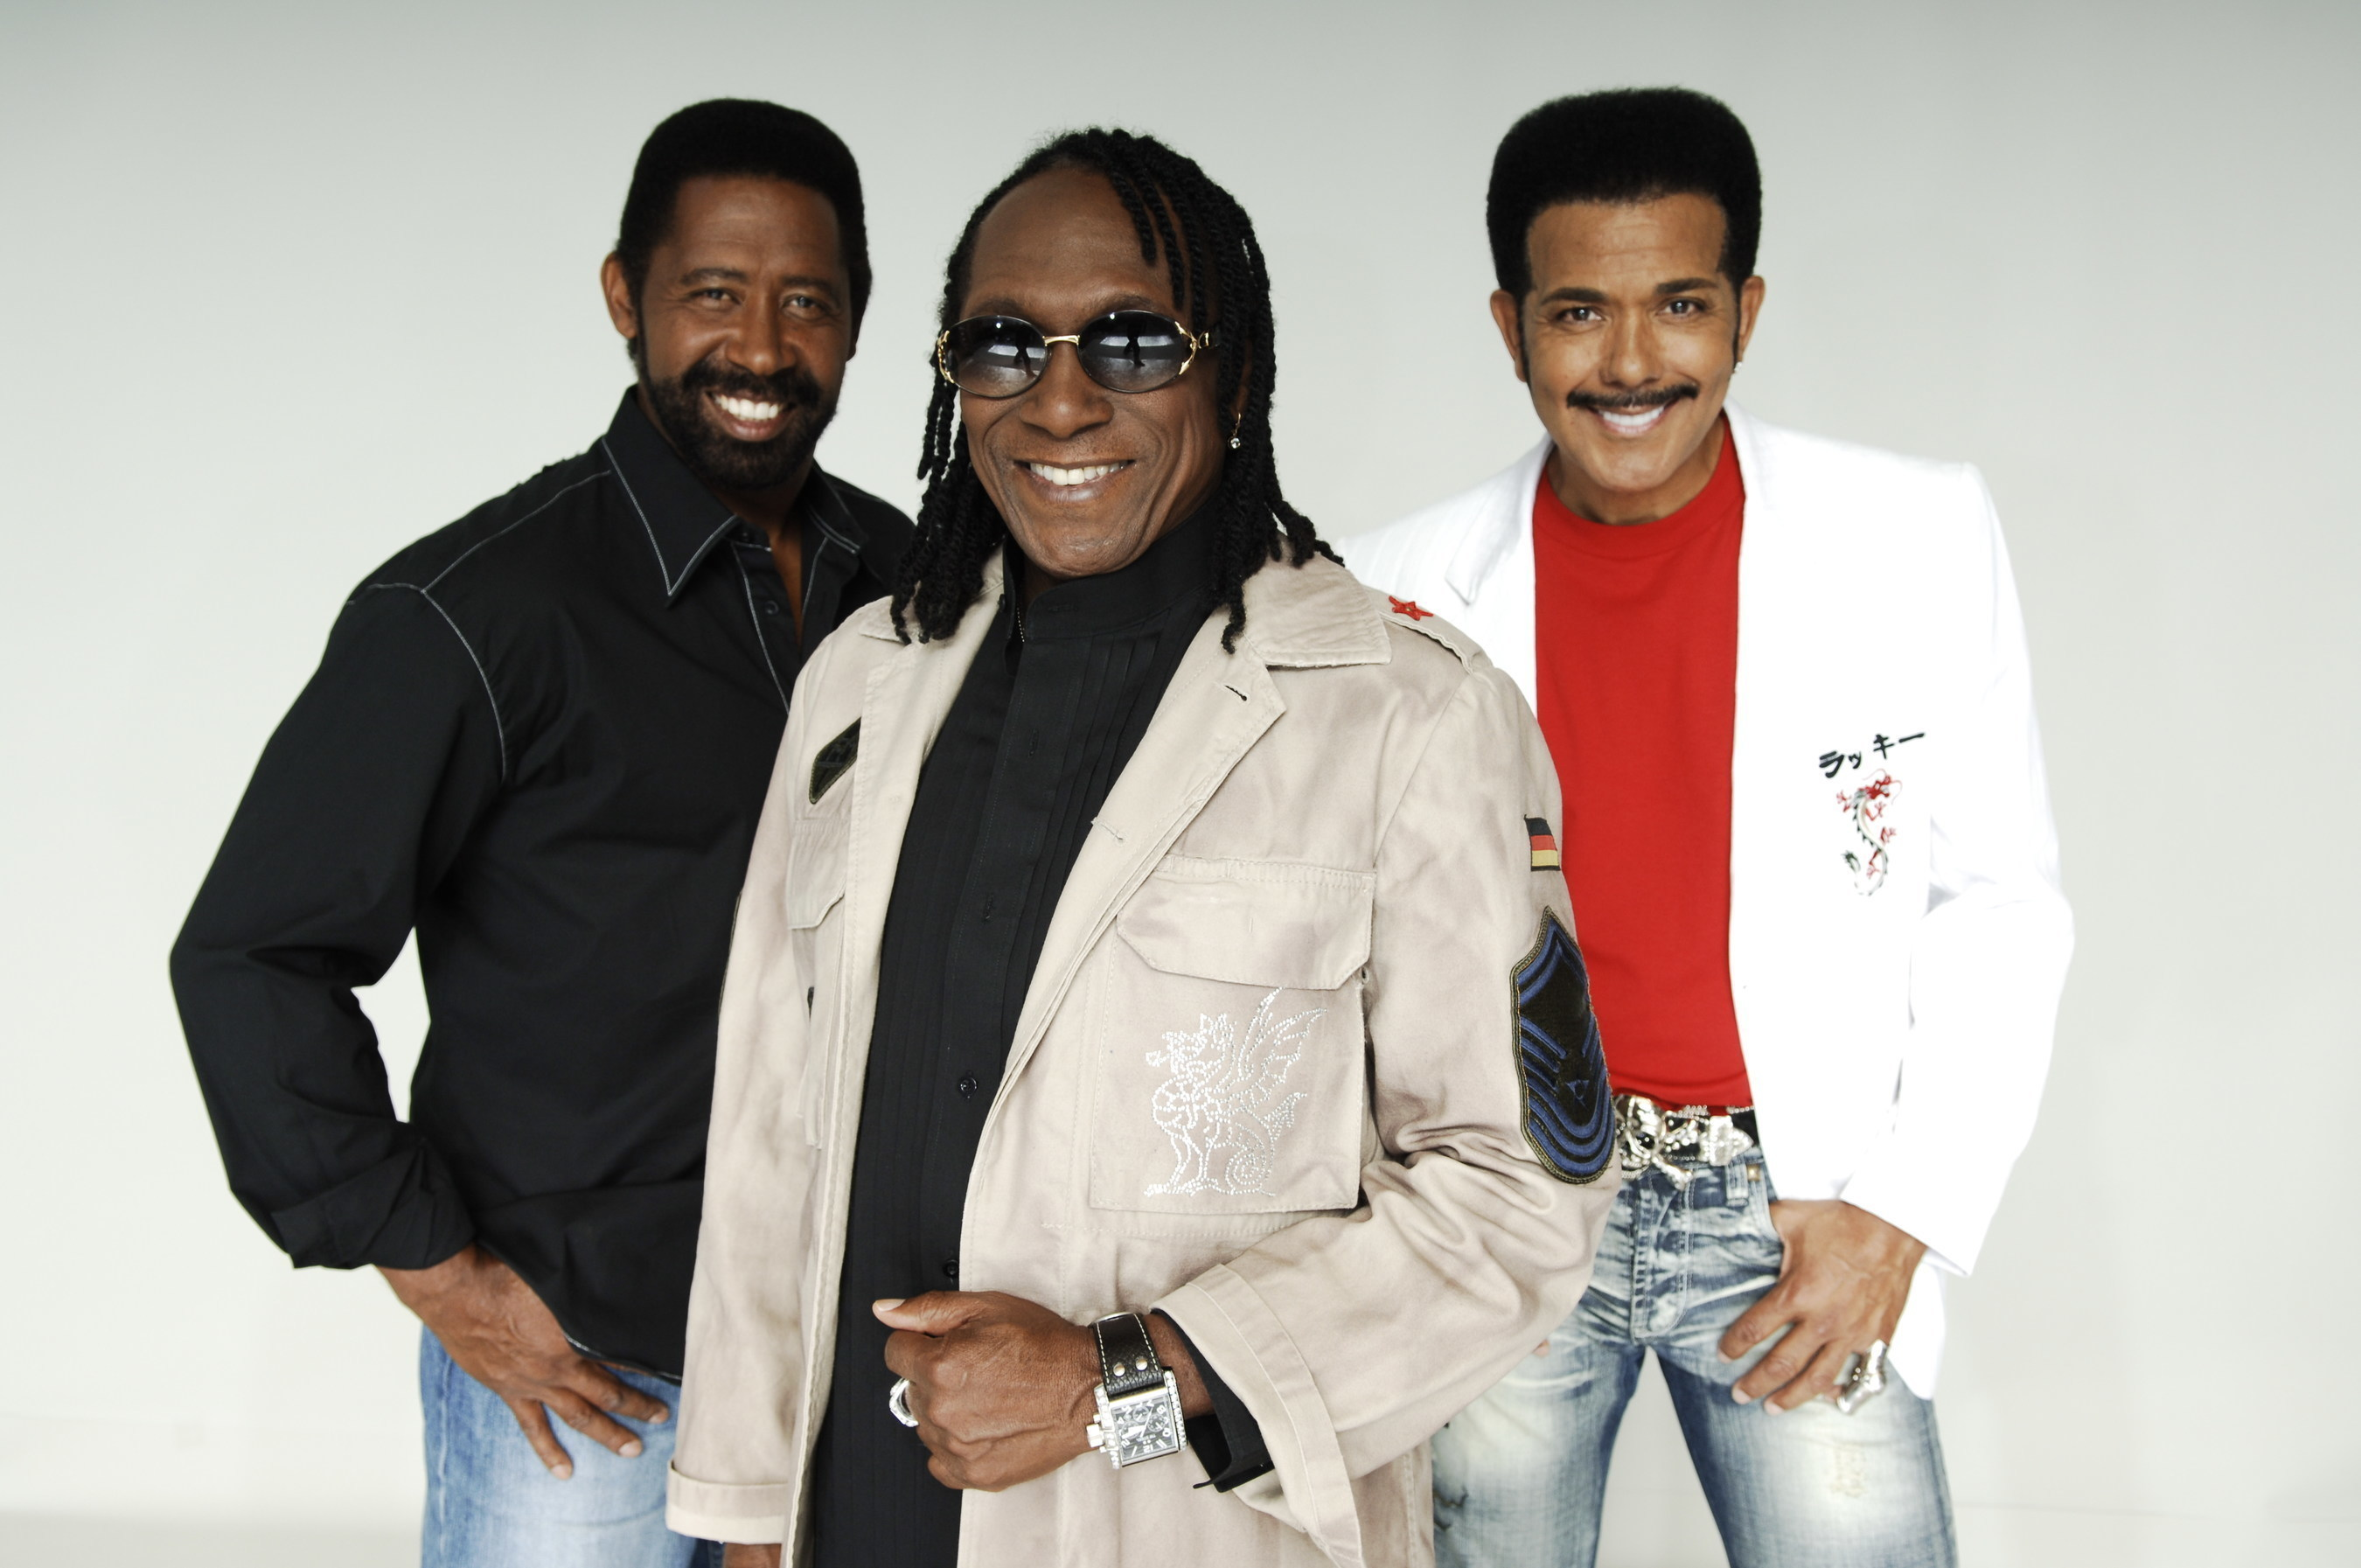 R&B & Pop Legends The Commodores Sign Worldwide Management Deal With 21st Century Artists, Inc.